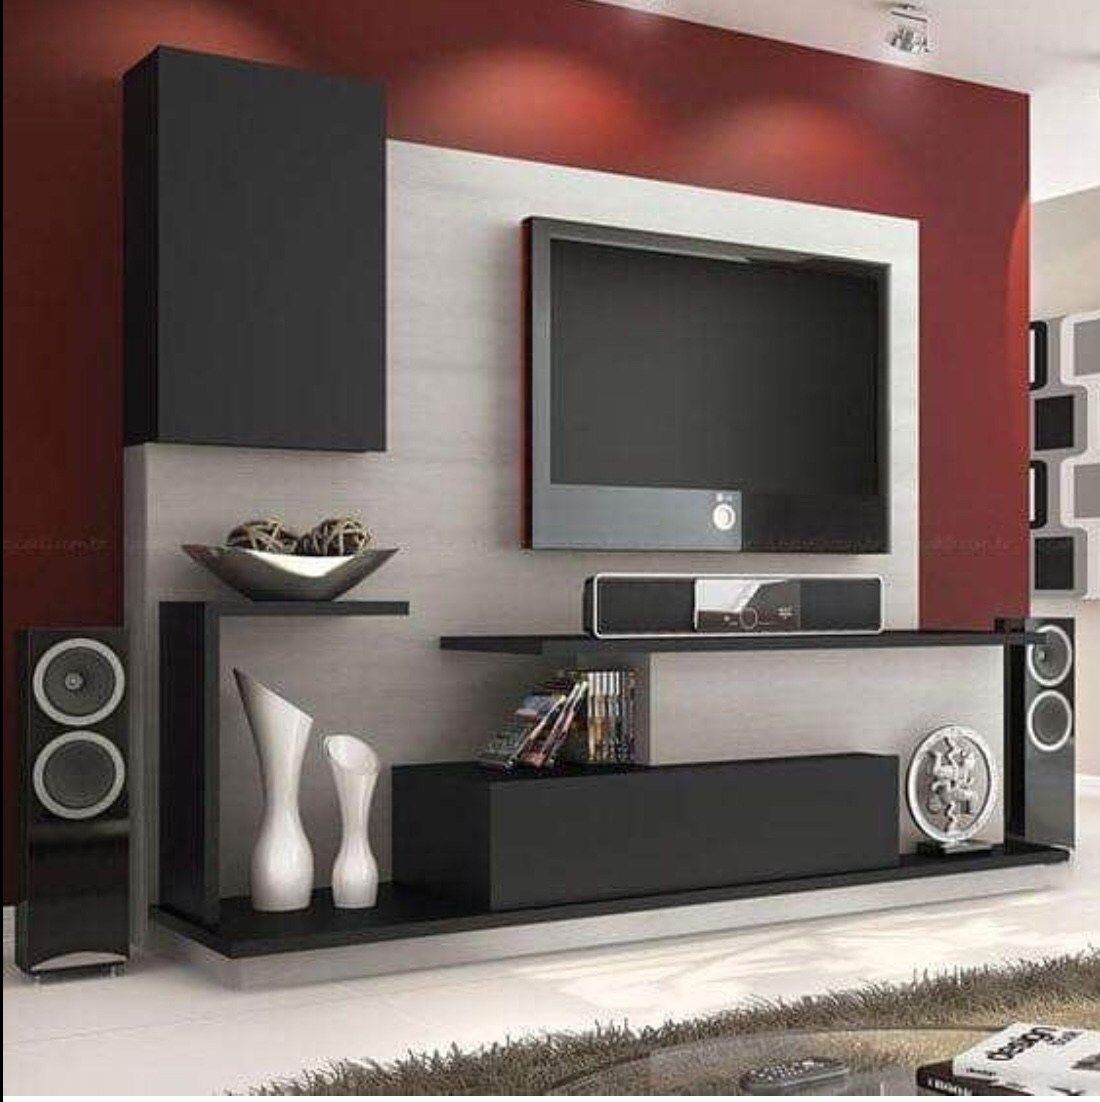 30 Amazing Tv Unit Design Ideas For Your Living Room The Wonder